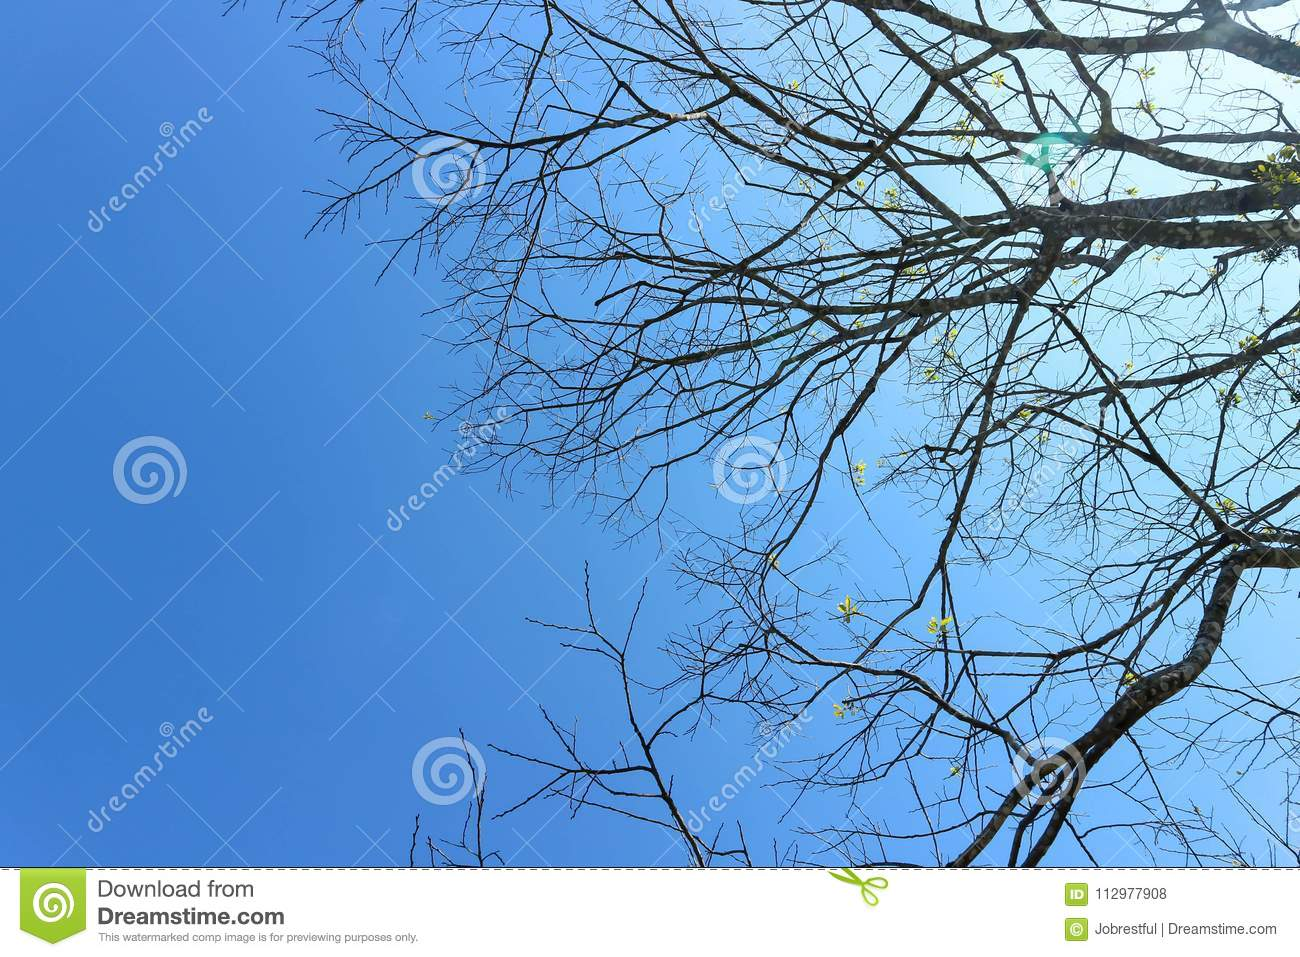 Branch or tree and blue sky